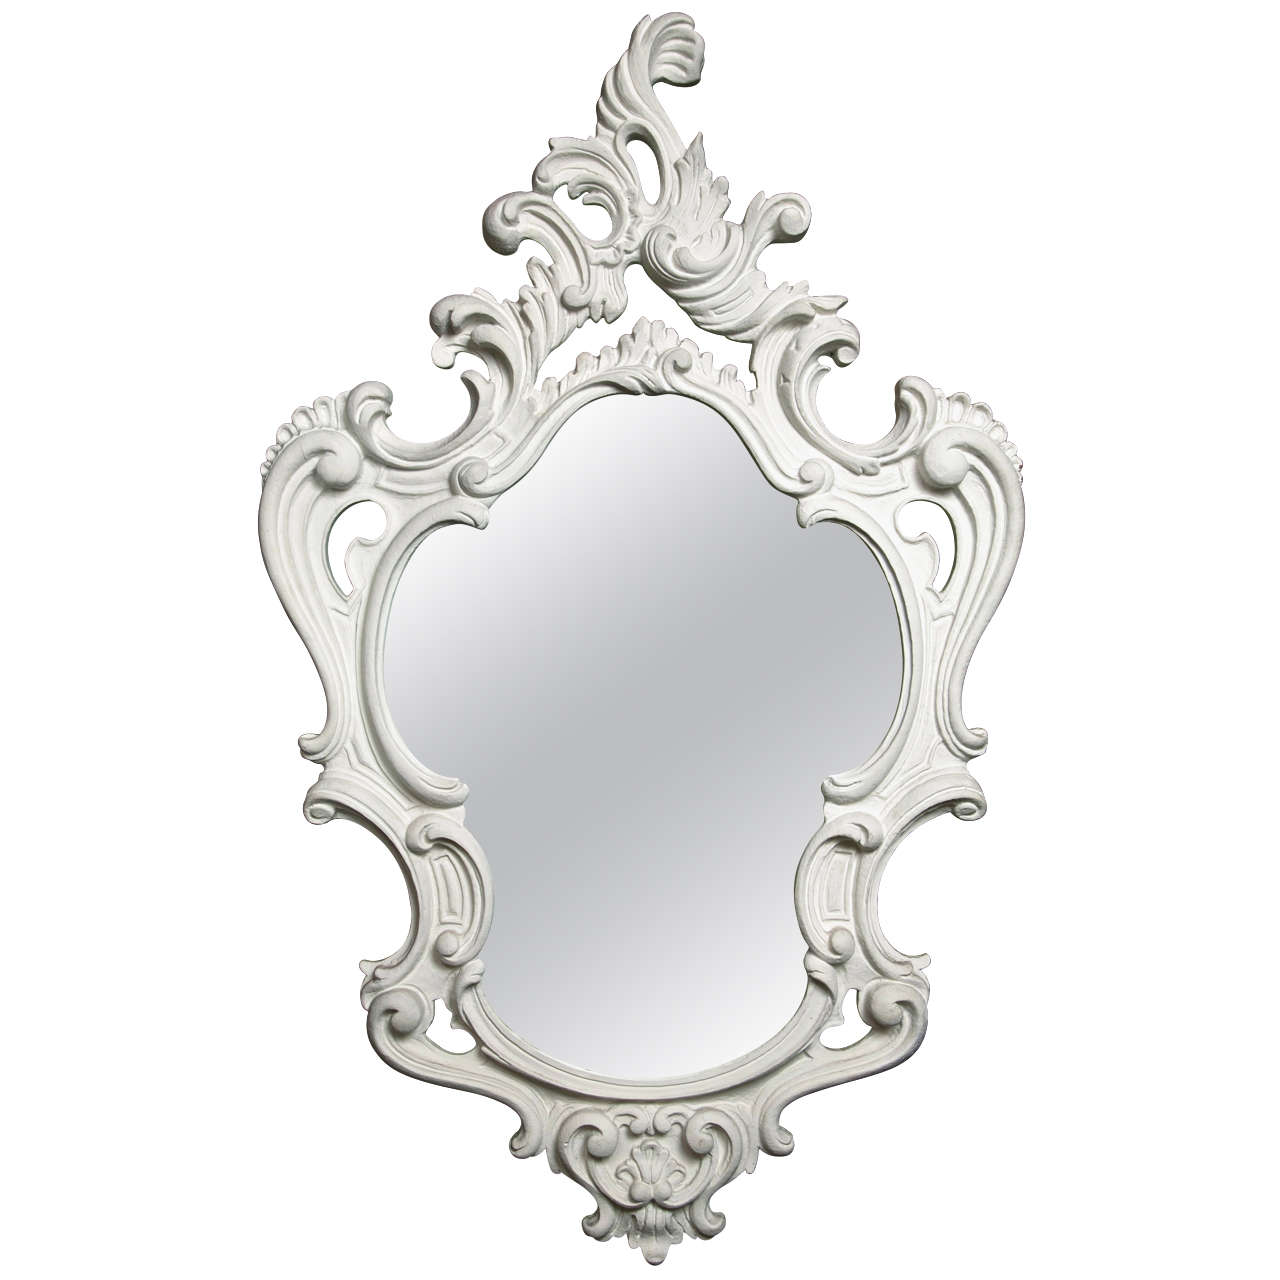 Dorothy draper style baroque plaster mirror at 1stdibs for Baroque style wall mirror